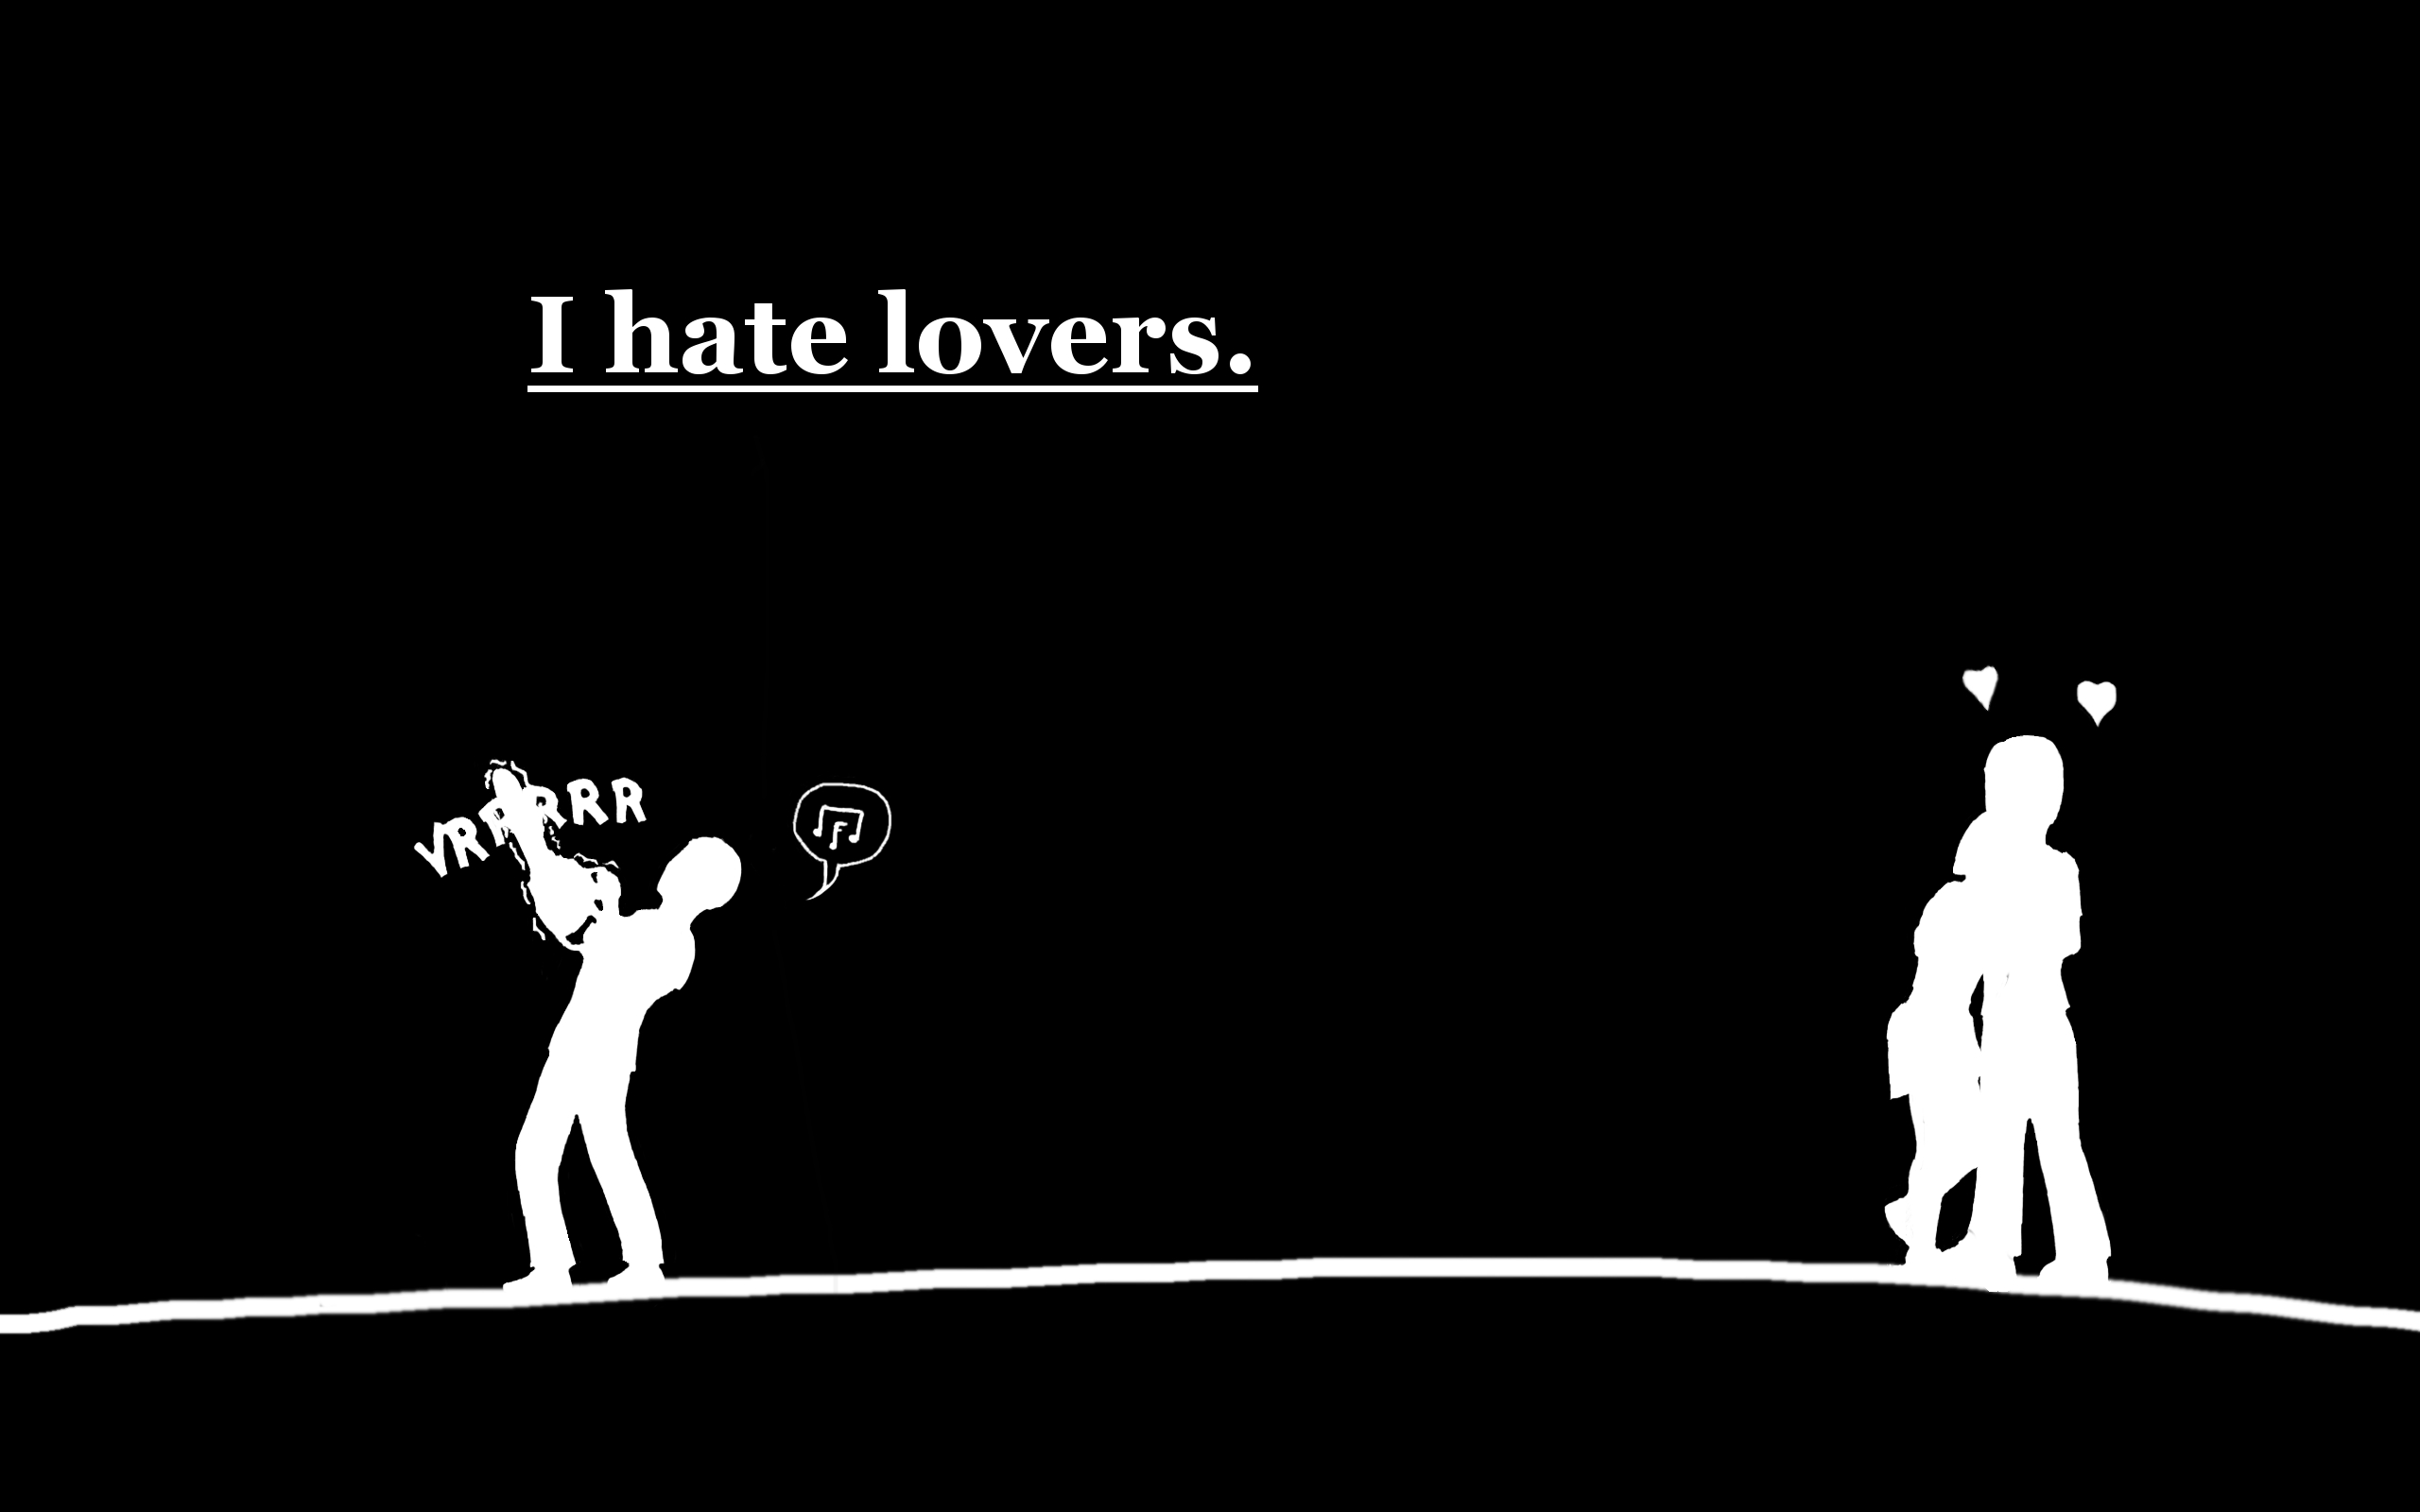 I hate lovers Full HD Wallpaper and Background Image 2560x1600 ID:258609